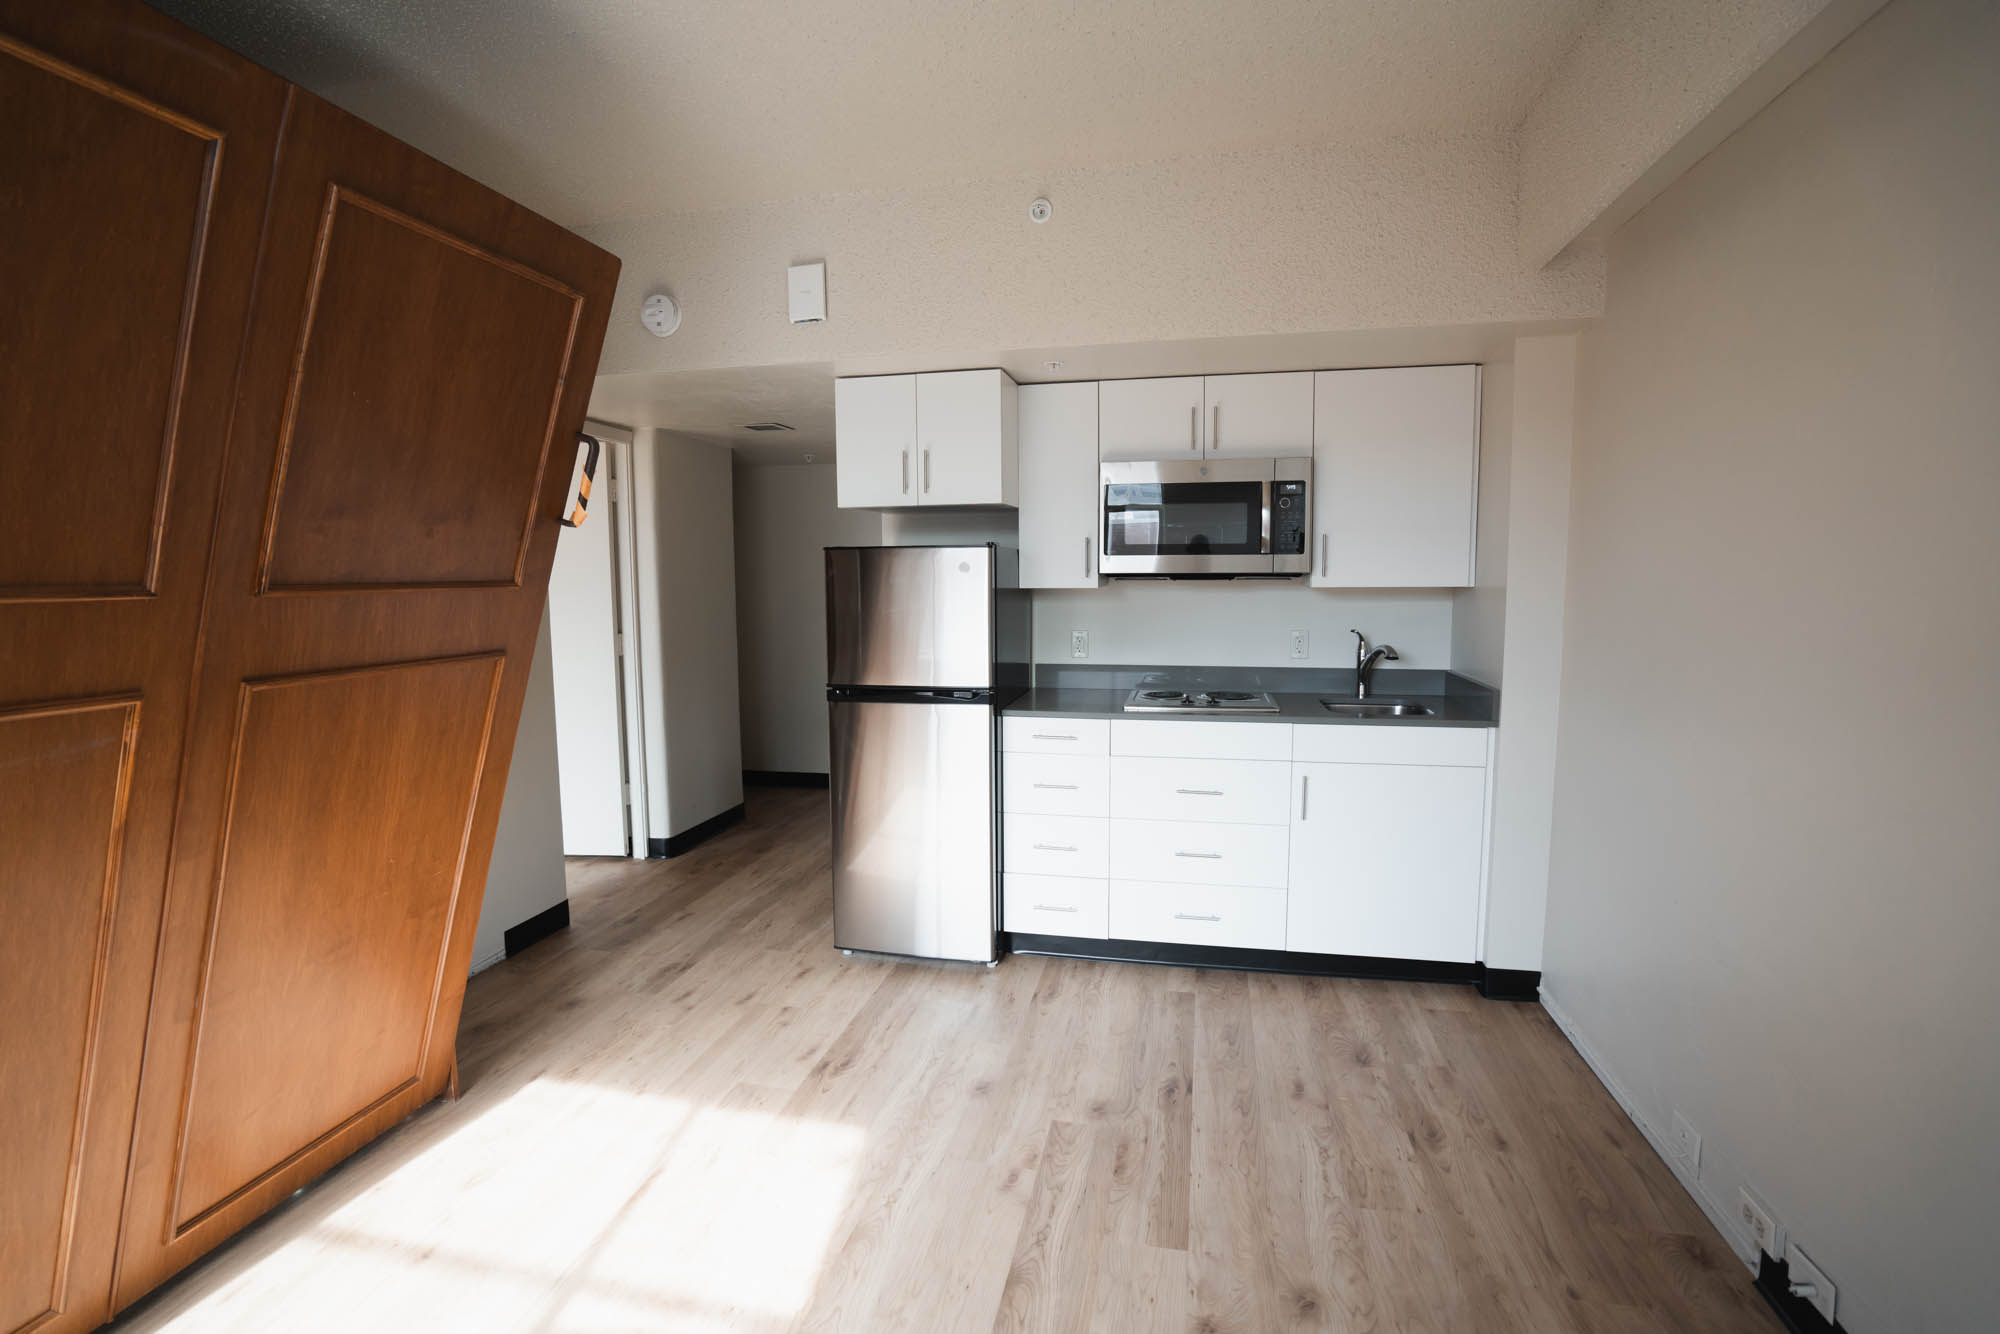 ridpath micro apartments spokane